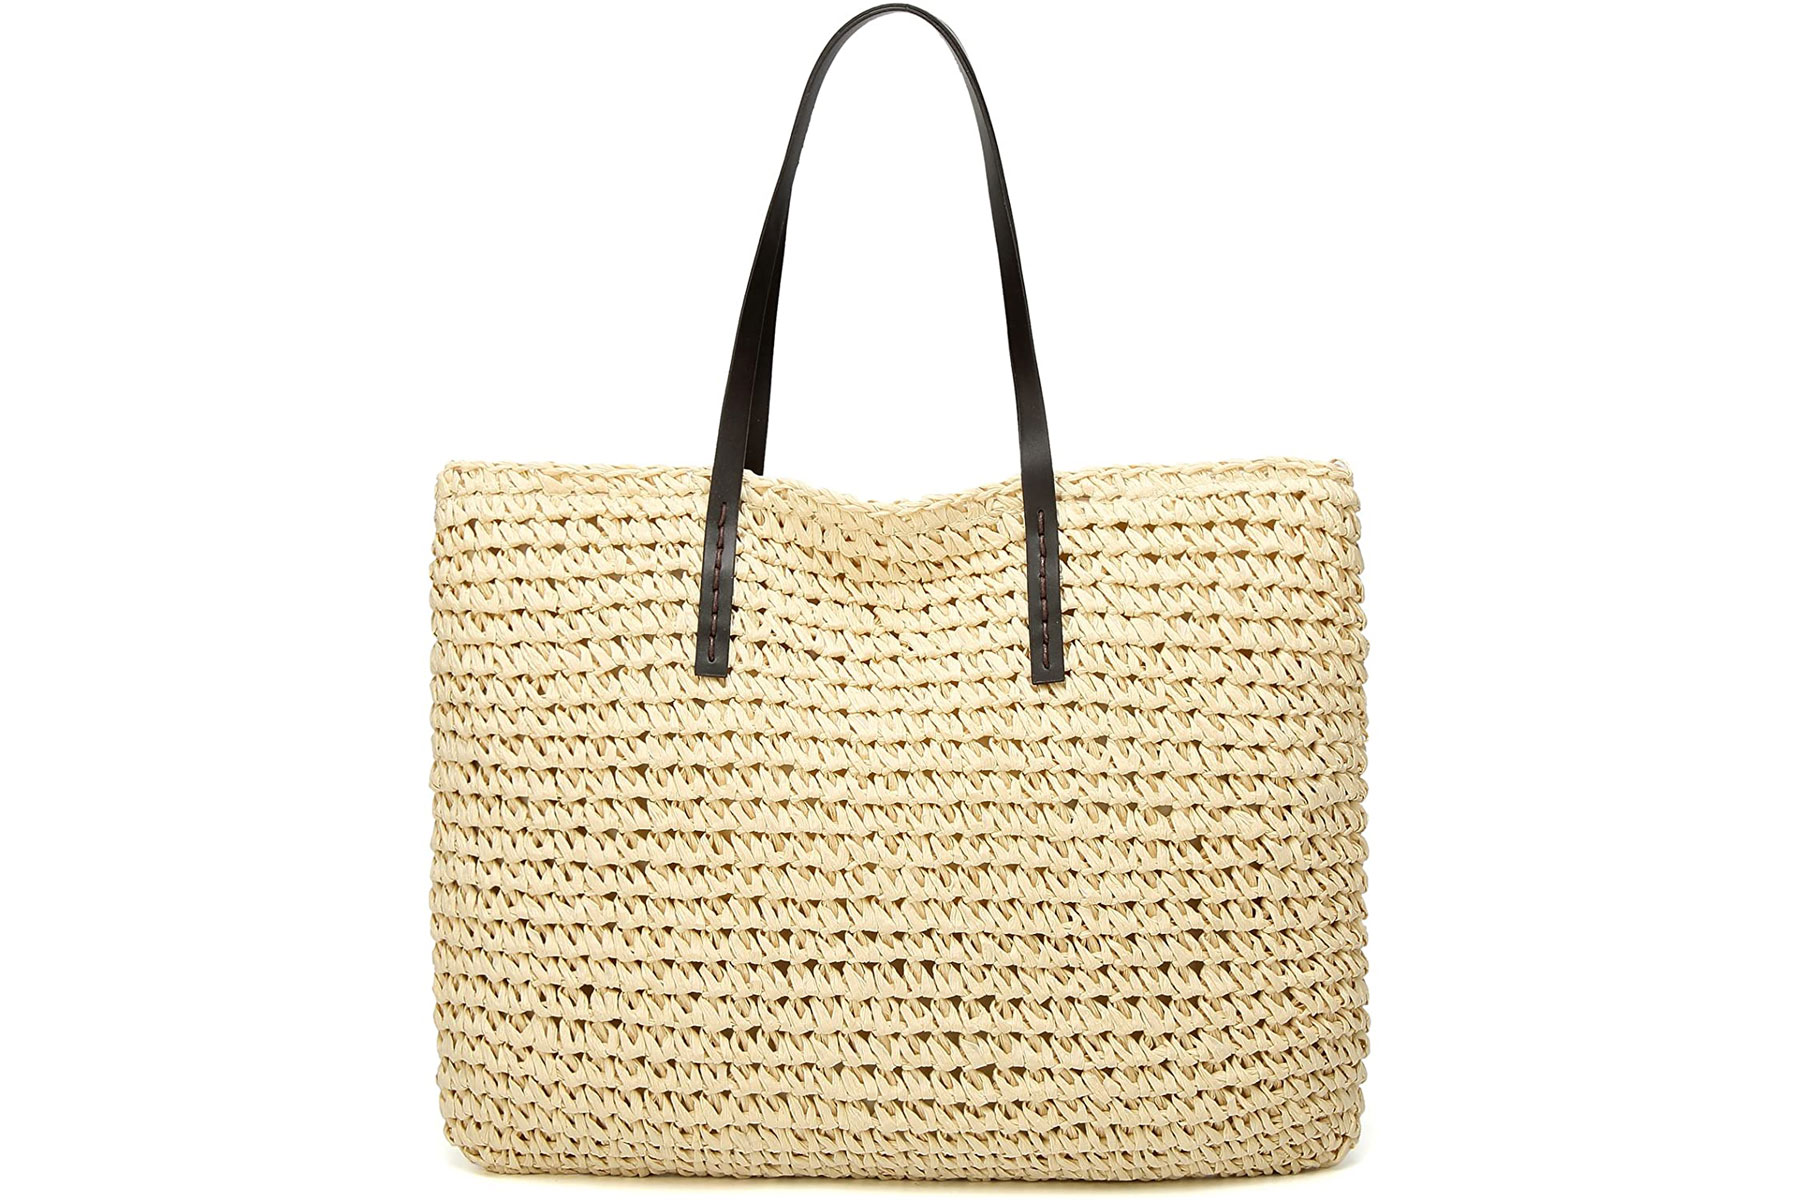 Light woven tote bag with leather handle